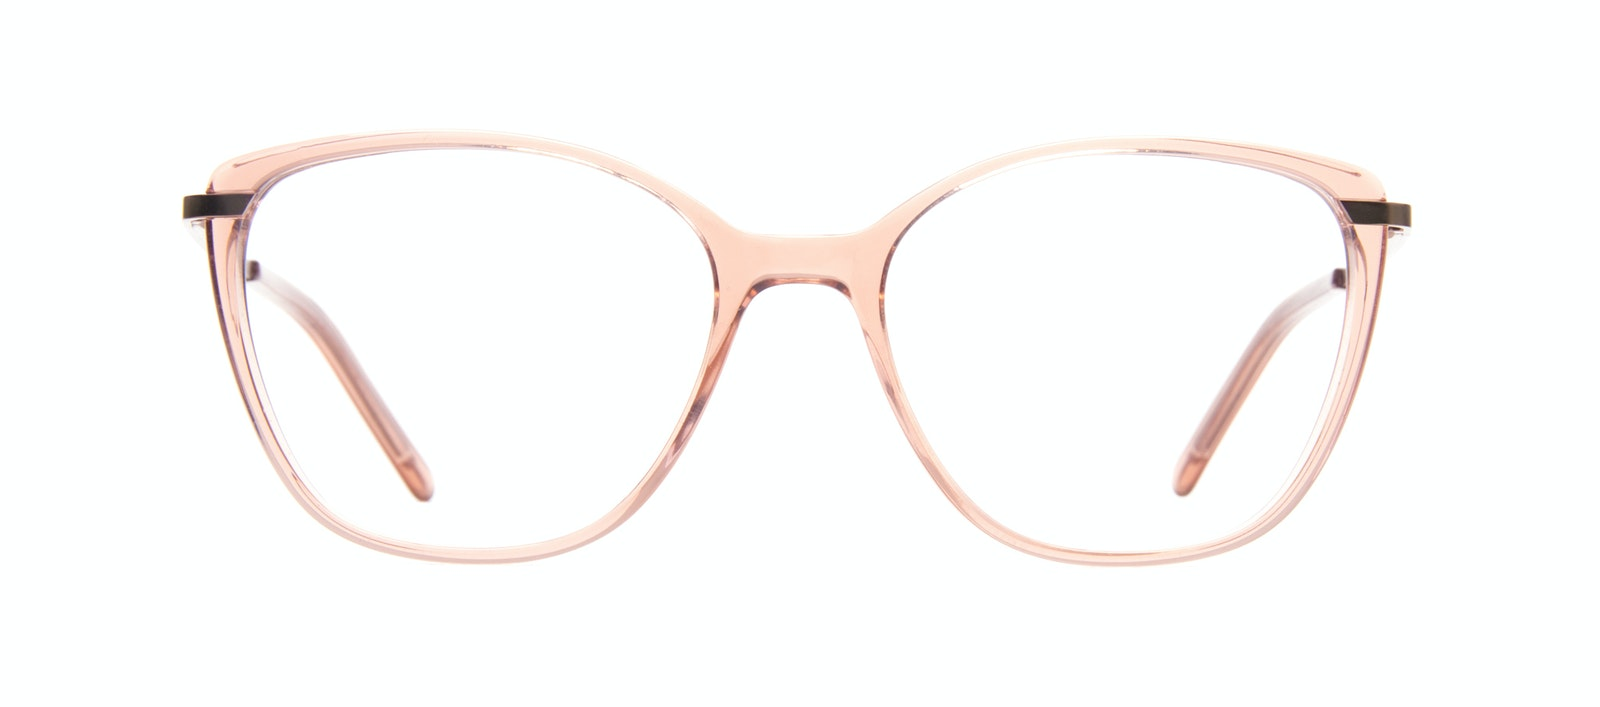 Affordable Fashion Glasses Rectangle Square Eyeglasses Women Illusion Rose Front